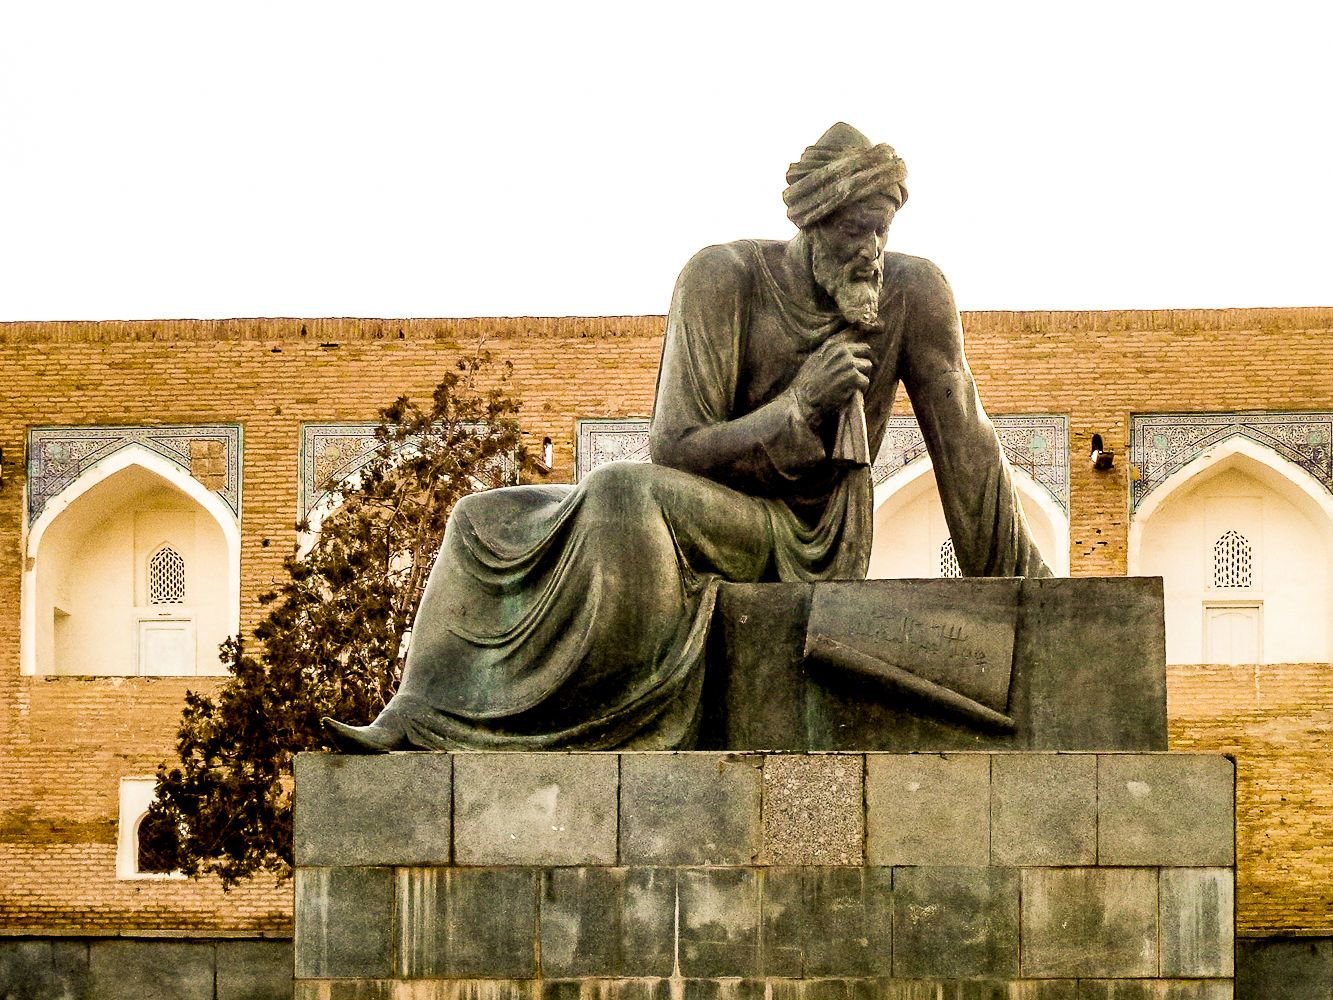 inventor of modern algebra and algorithm lived in Khiva, Uzbekistan